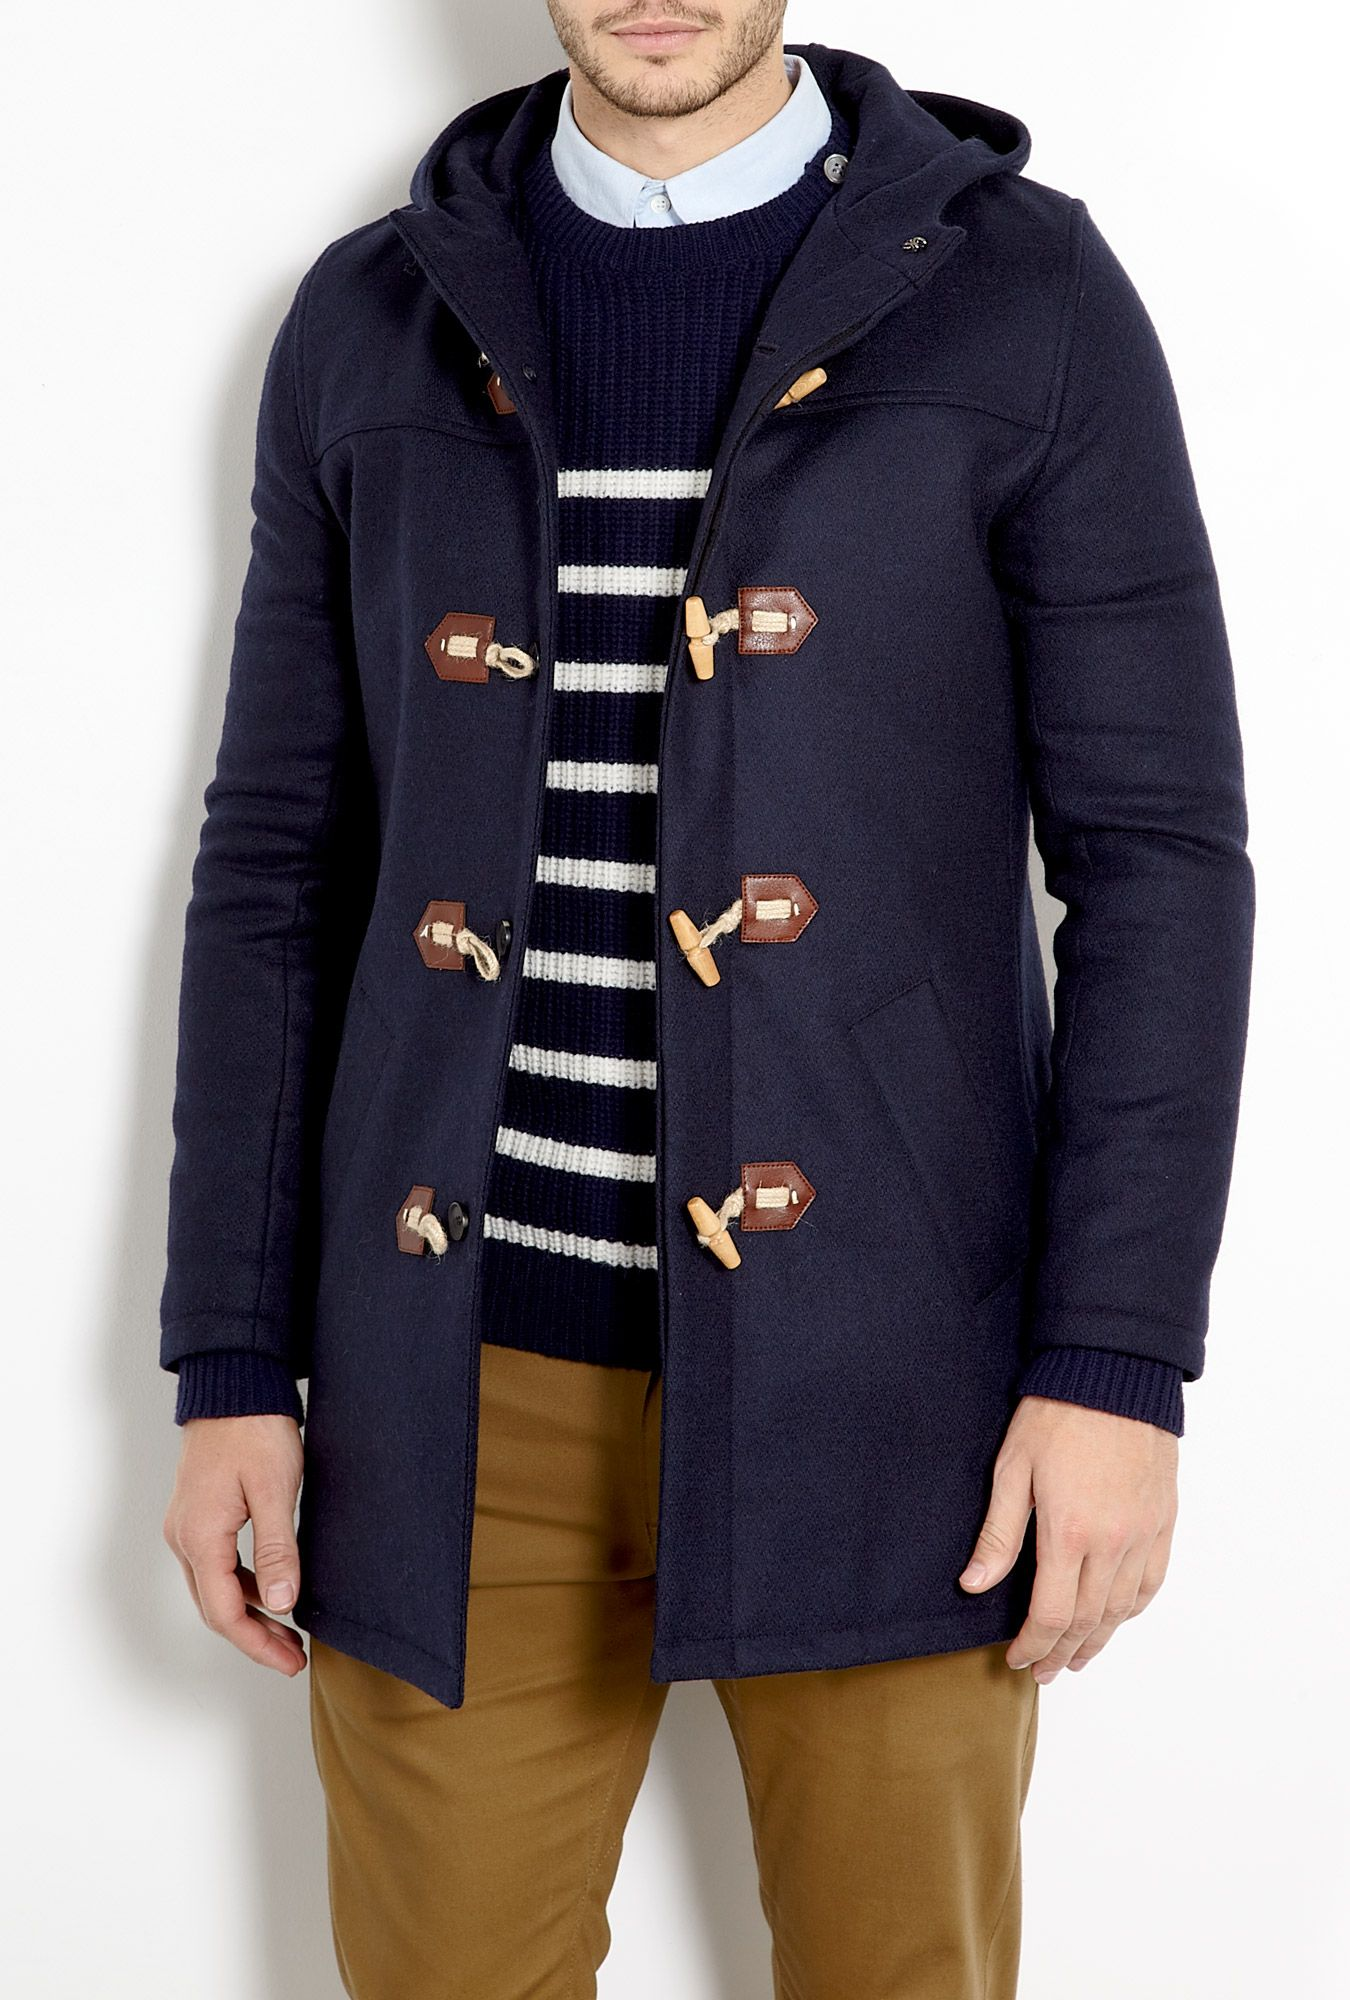 Dark Navy Melton Duffle Coat by A.P.C | A P P A R E L | Pinterest ...